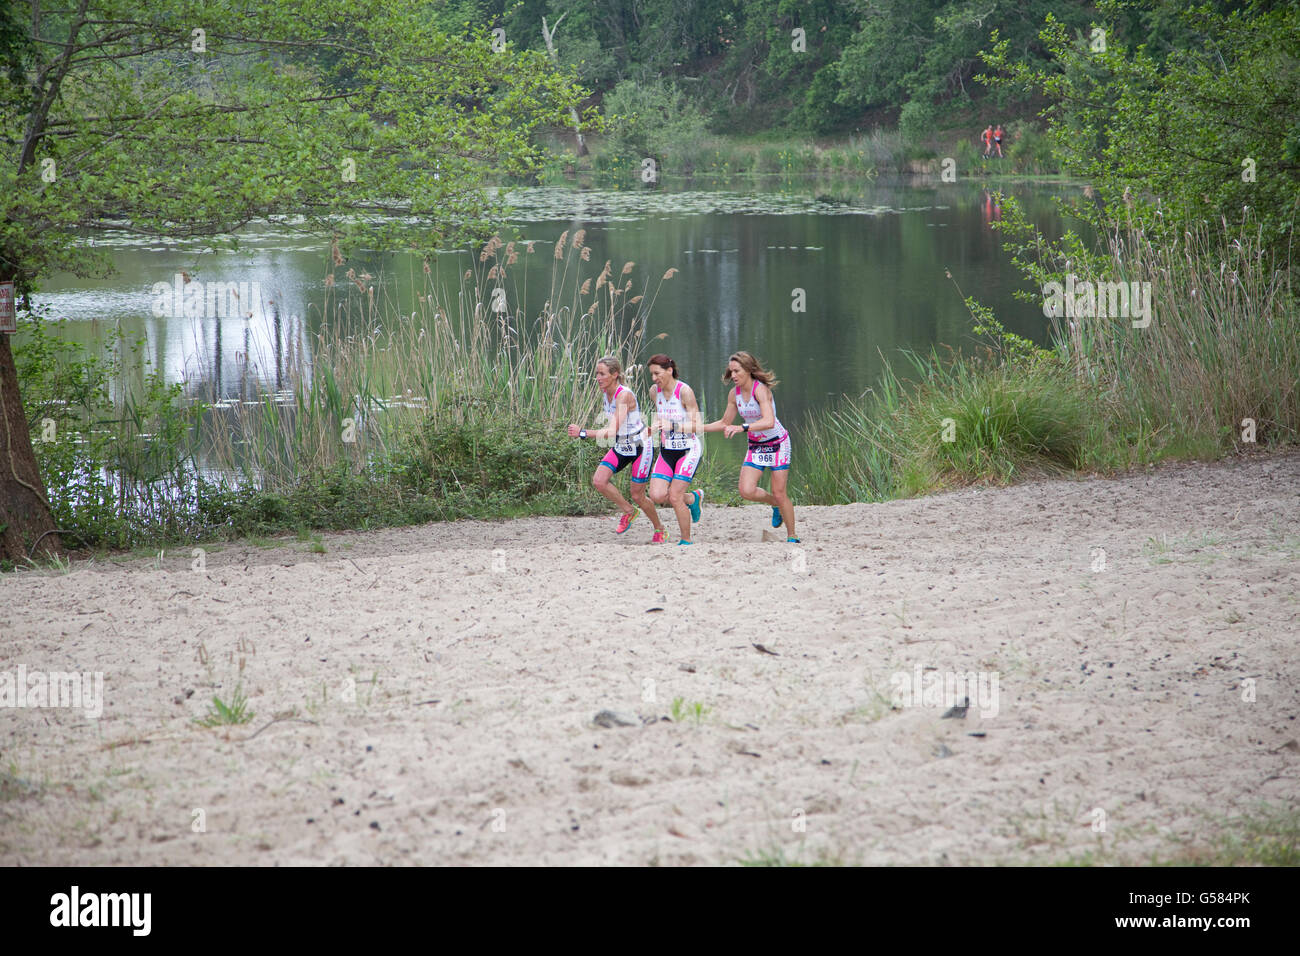 Team of women runners competing in Triathlon of Mimizam France - Stock Image